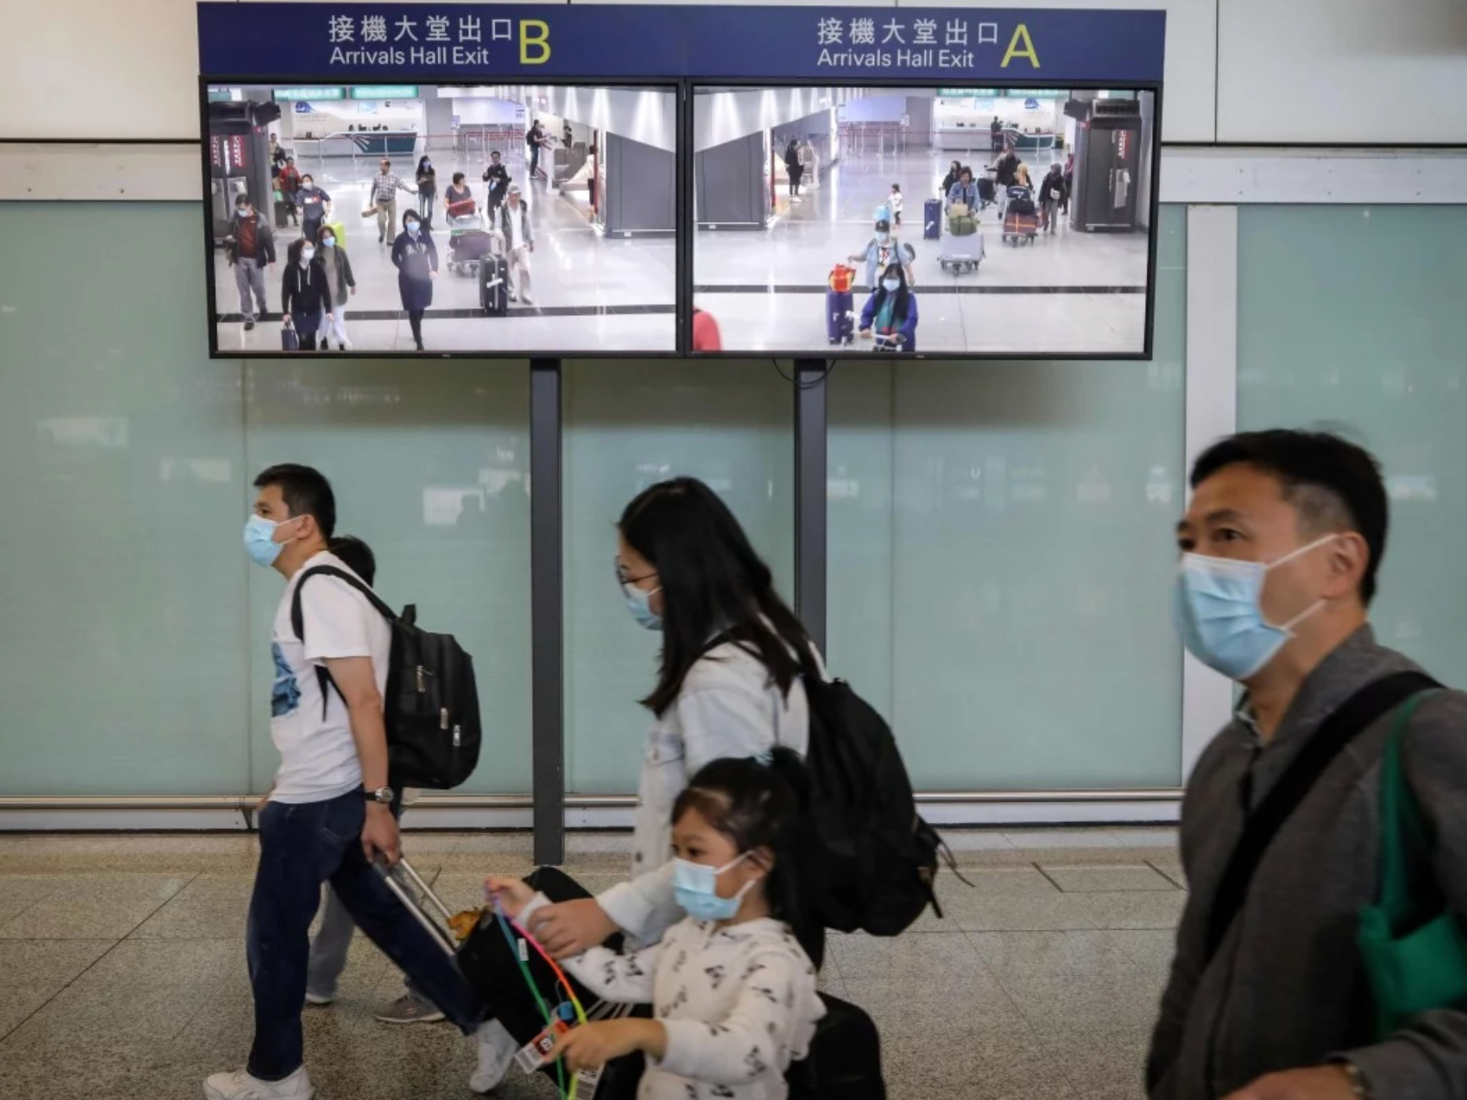 Confirmed cases of new coronavirus pneumonia rise to 5 in Hong Kong